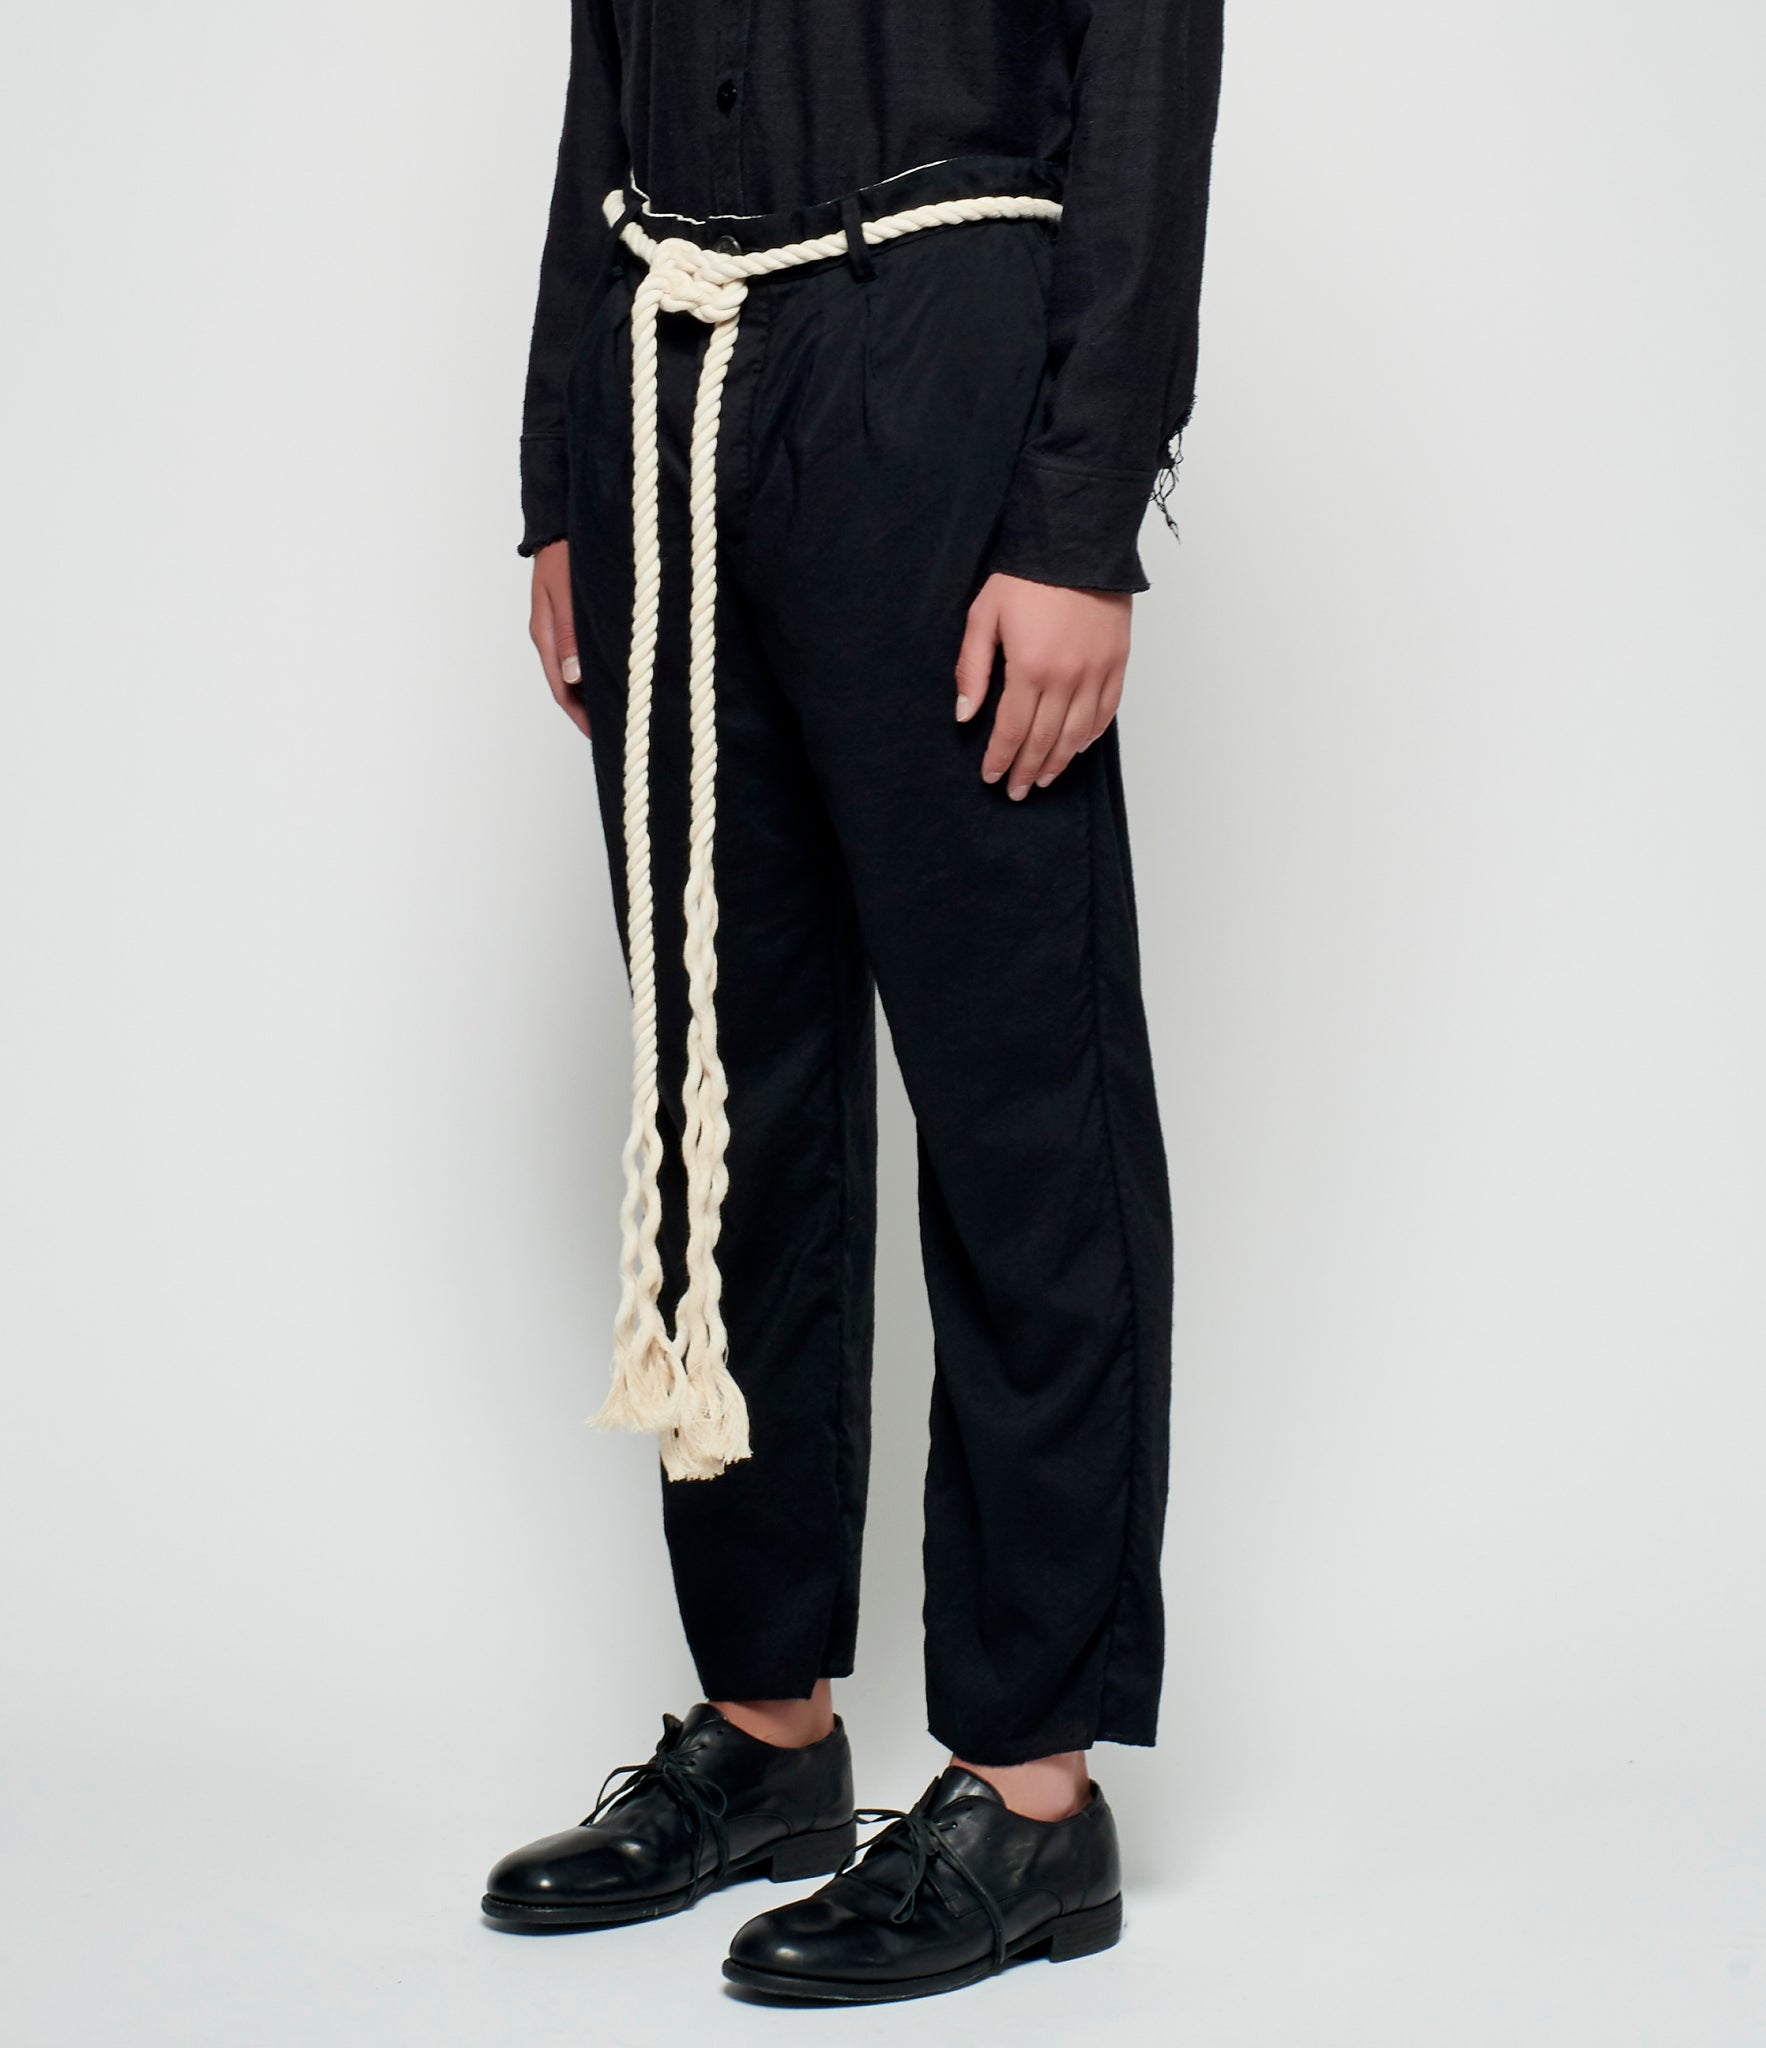 Elena Dawson Baggy Cropped Rope Belt Trousers